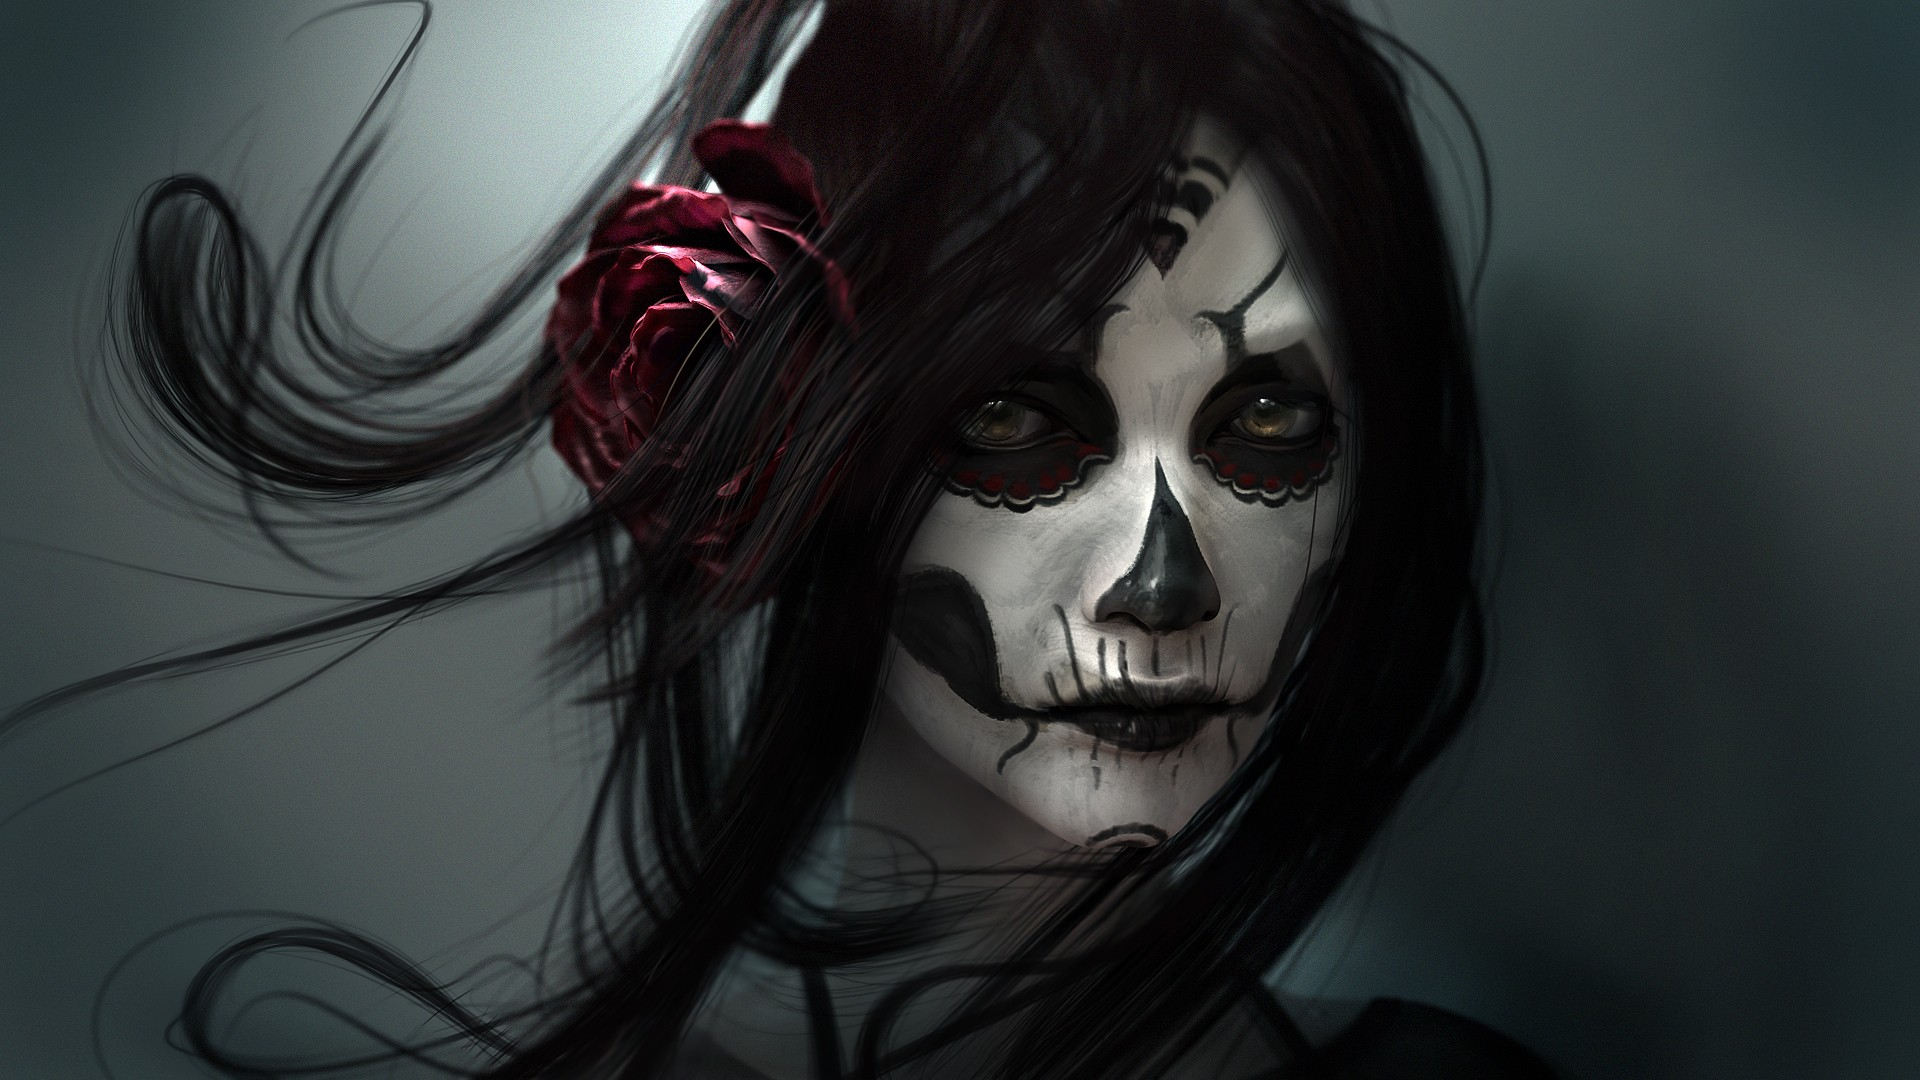 Black Baccara wallpaper girl skull face painting Day of the dead 1920x1080